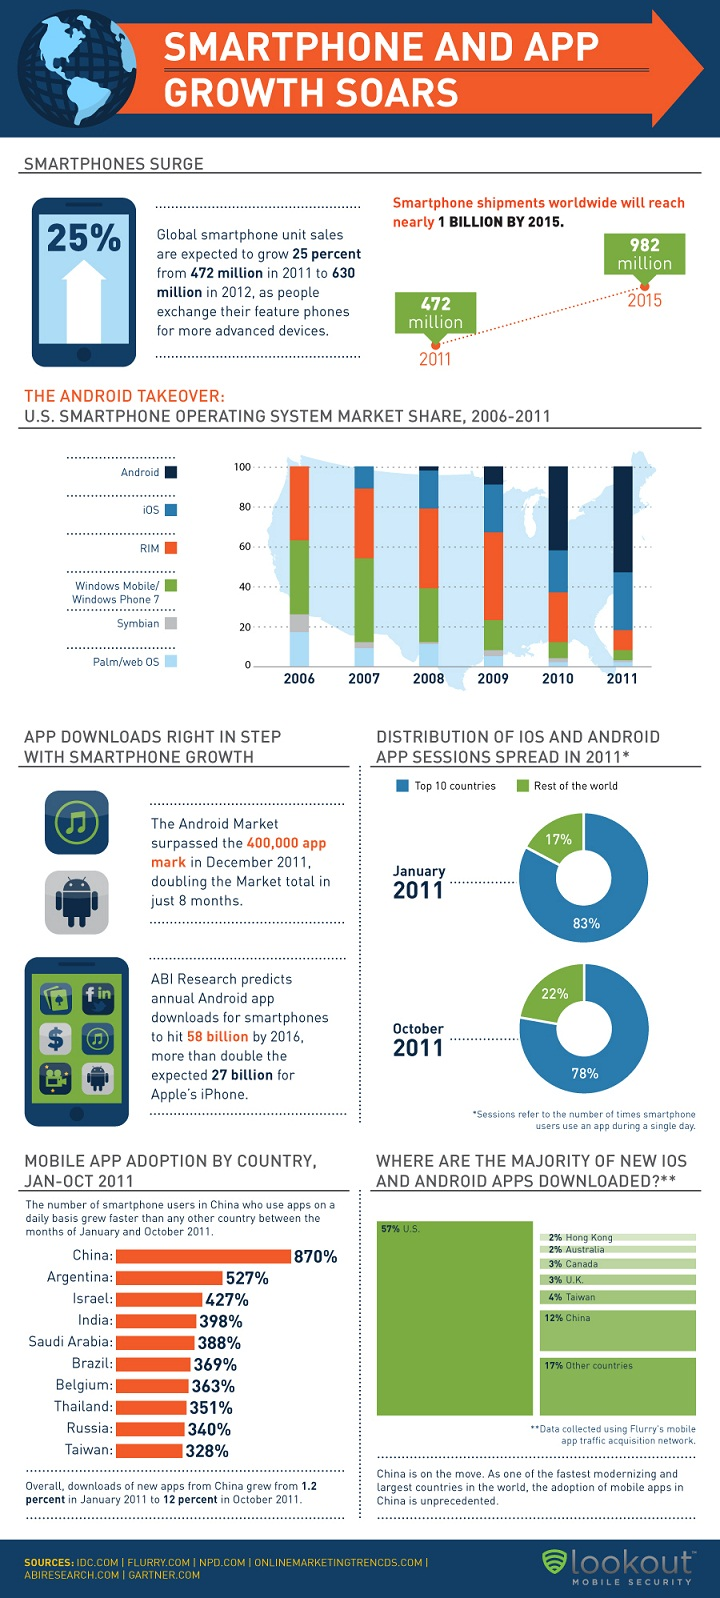 Smartphone and APP Growth Soars